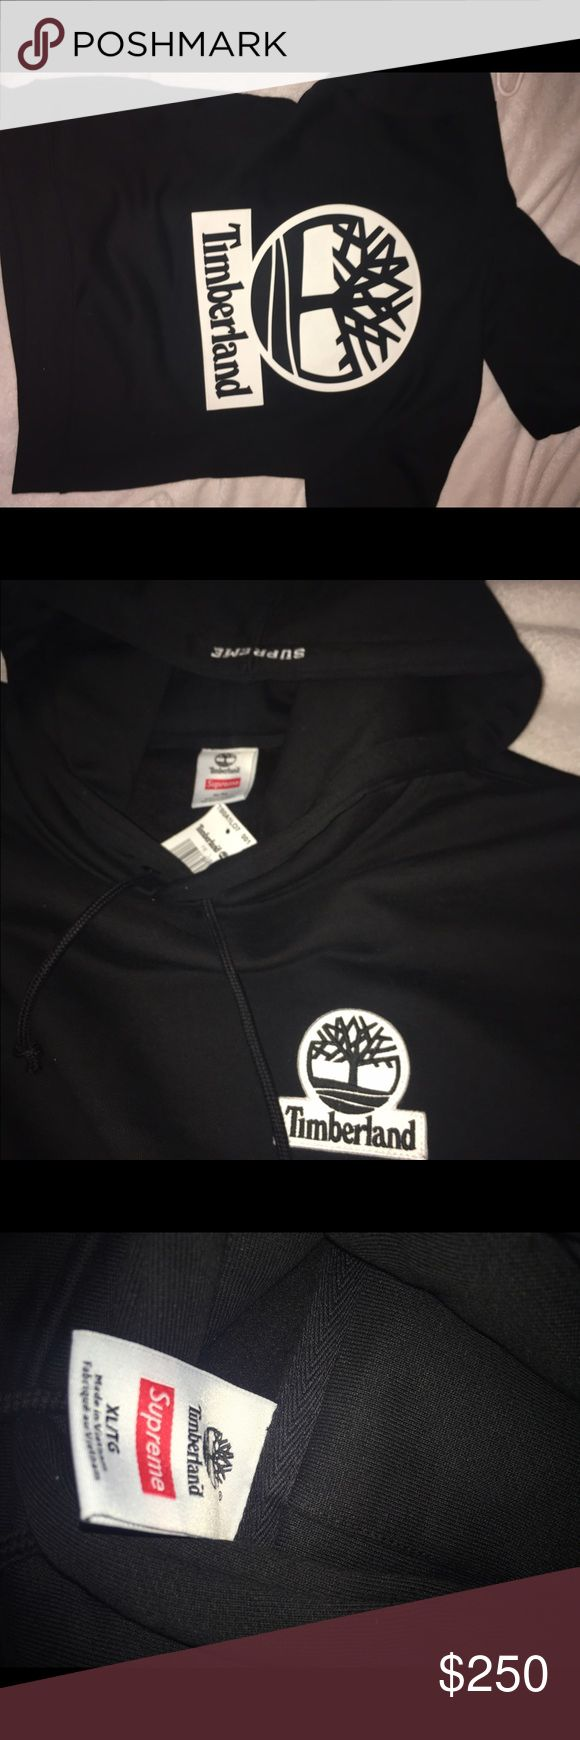 Supreme X Timberland hoodie Brand new never worn. Black xl supreme timberland collaboration. Very thick! Heavy fitting hoodie! Super high quality. - comes with bag, receipt and sticker! Supreme Sweaters